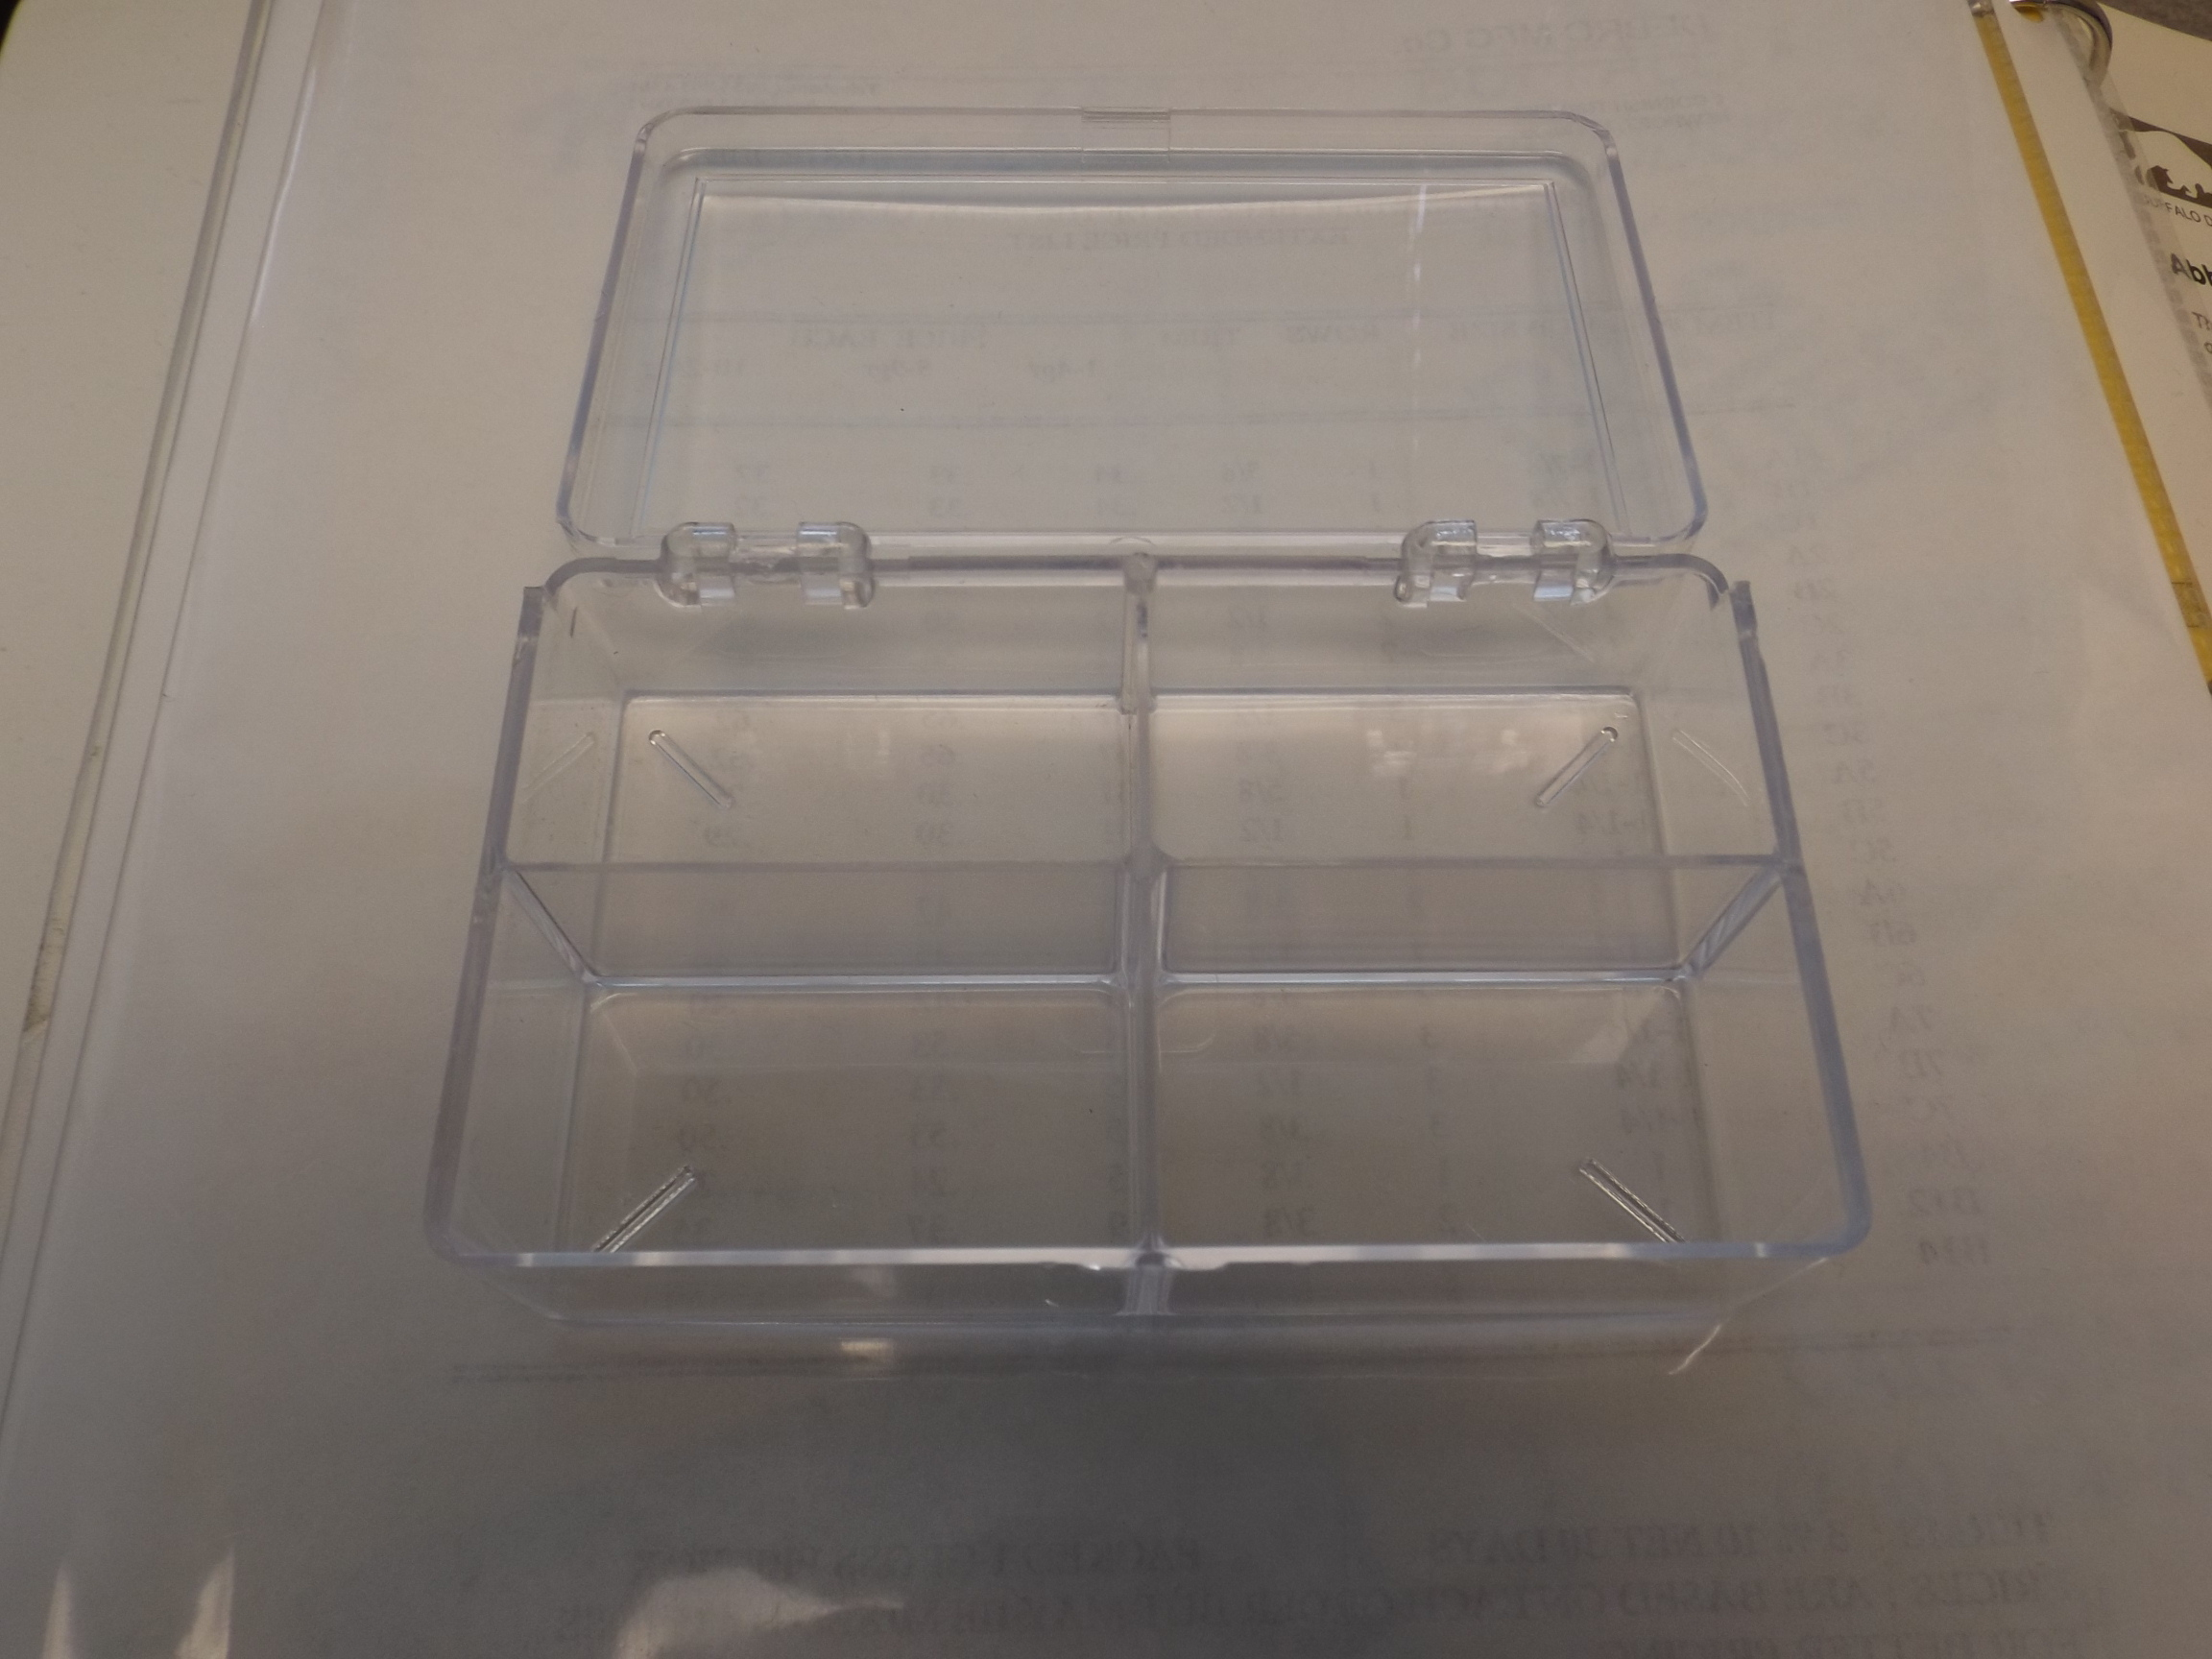 BX434 Plastic Storage Box with 4 Compartments